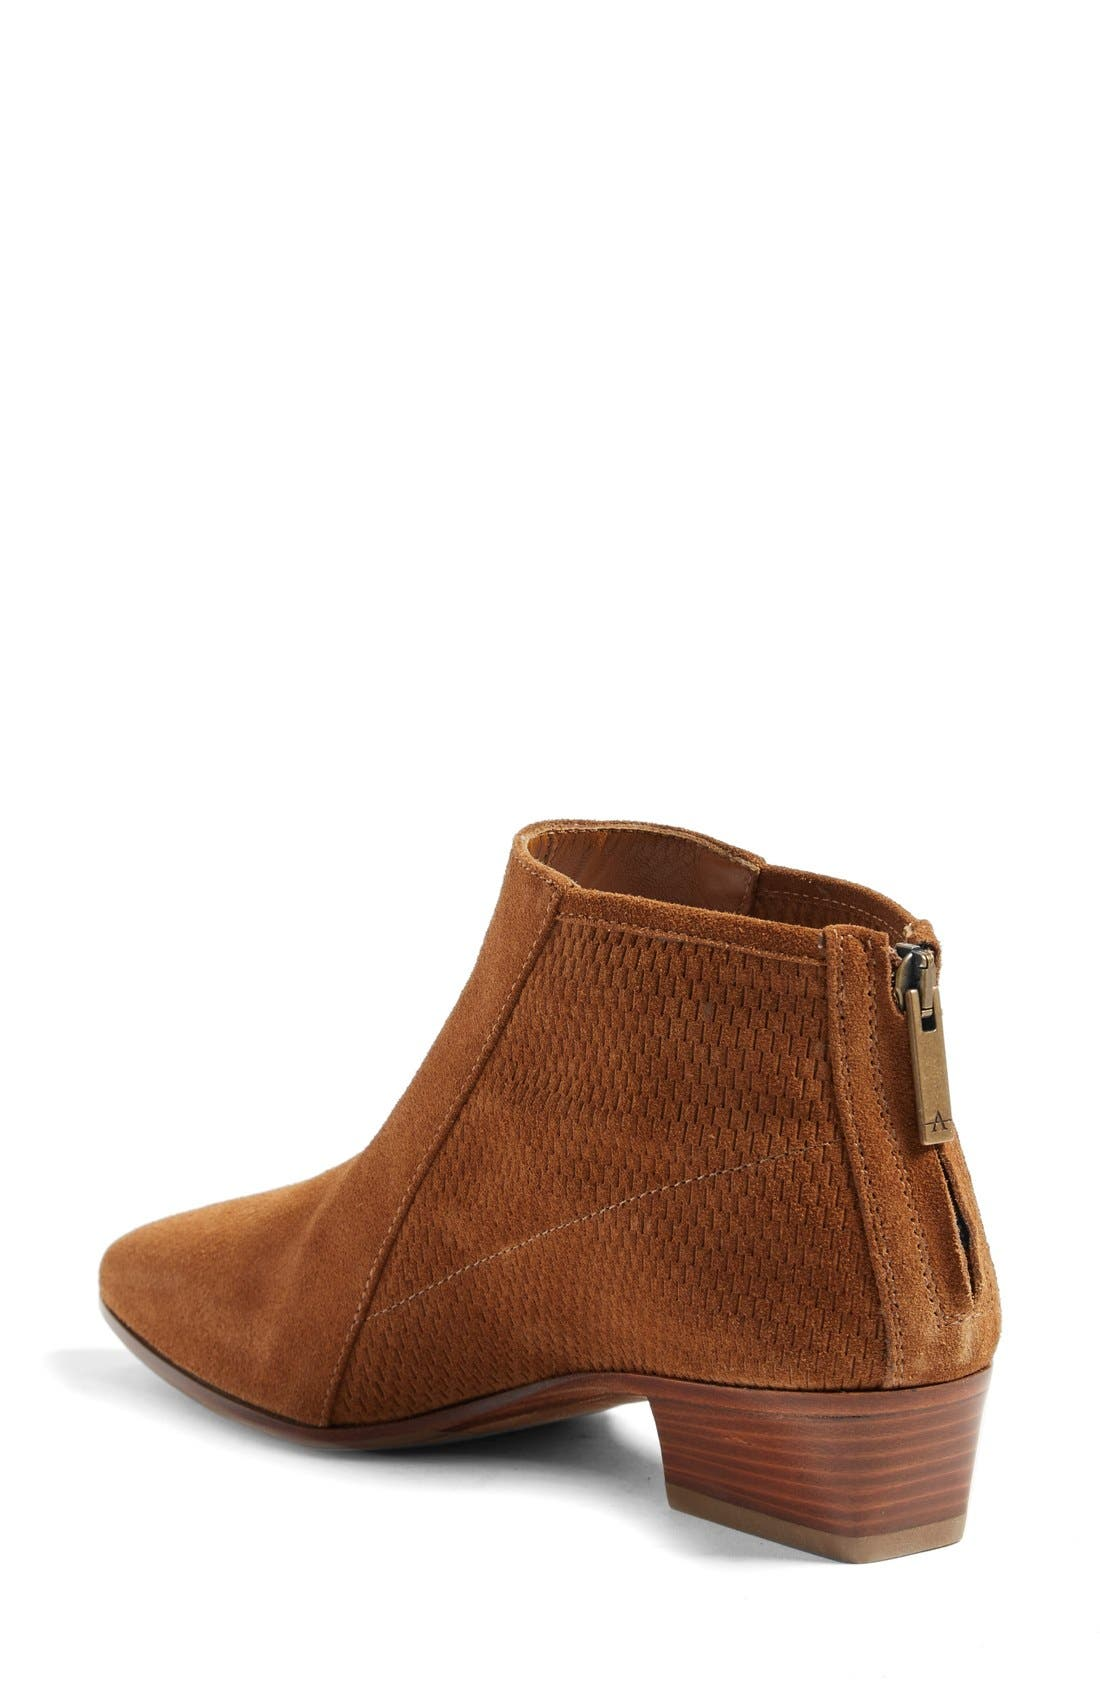 Alternate Image 2  - Aquatalia Fianna Perforated Bootie (Women)